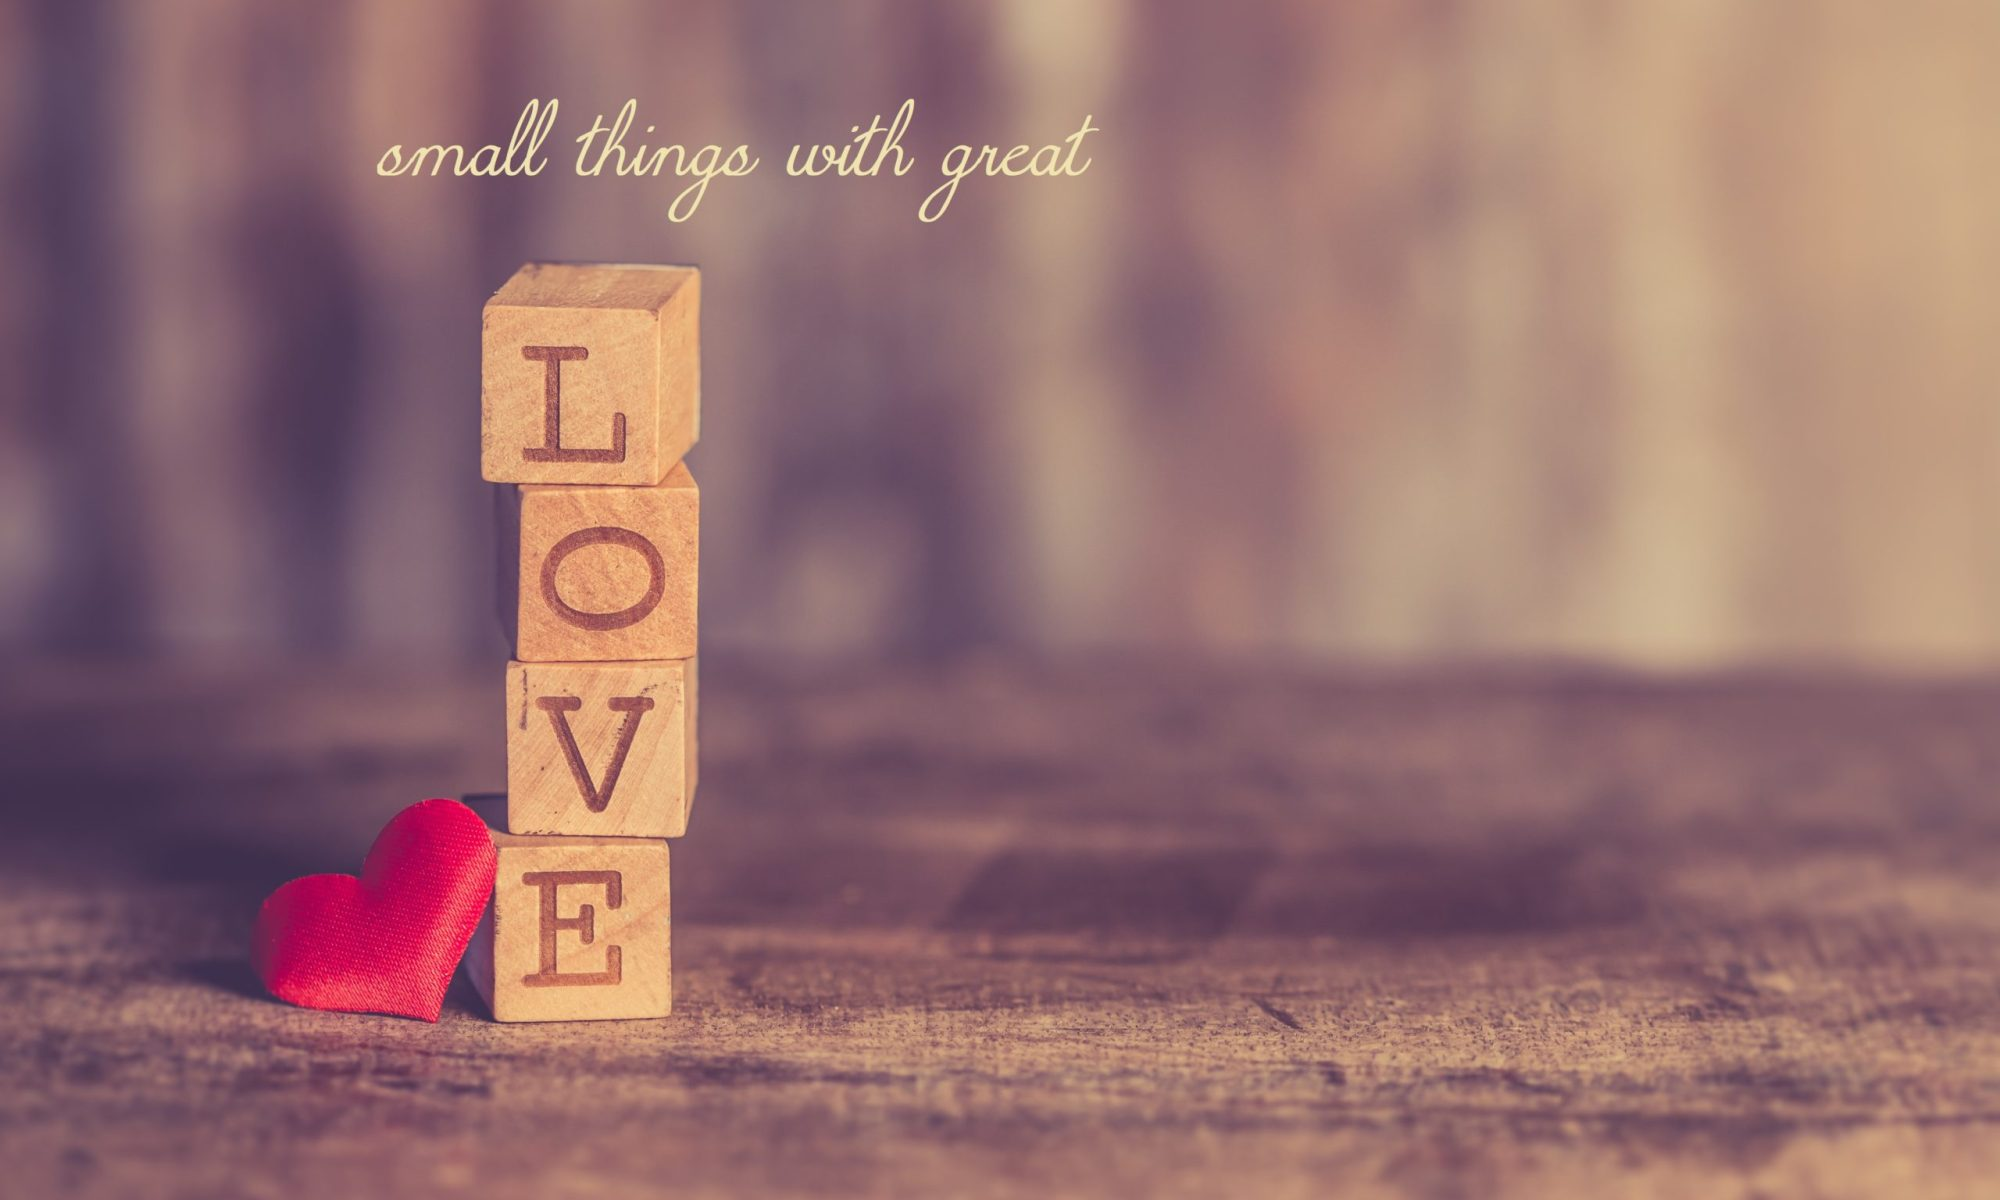 Words-small-tings-with-great-love-and-stack-of-love-wooden-blocks